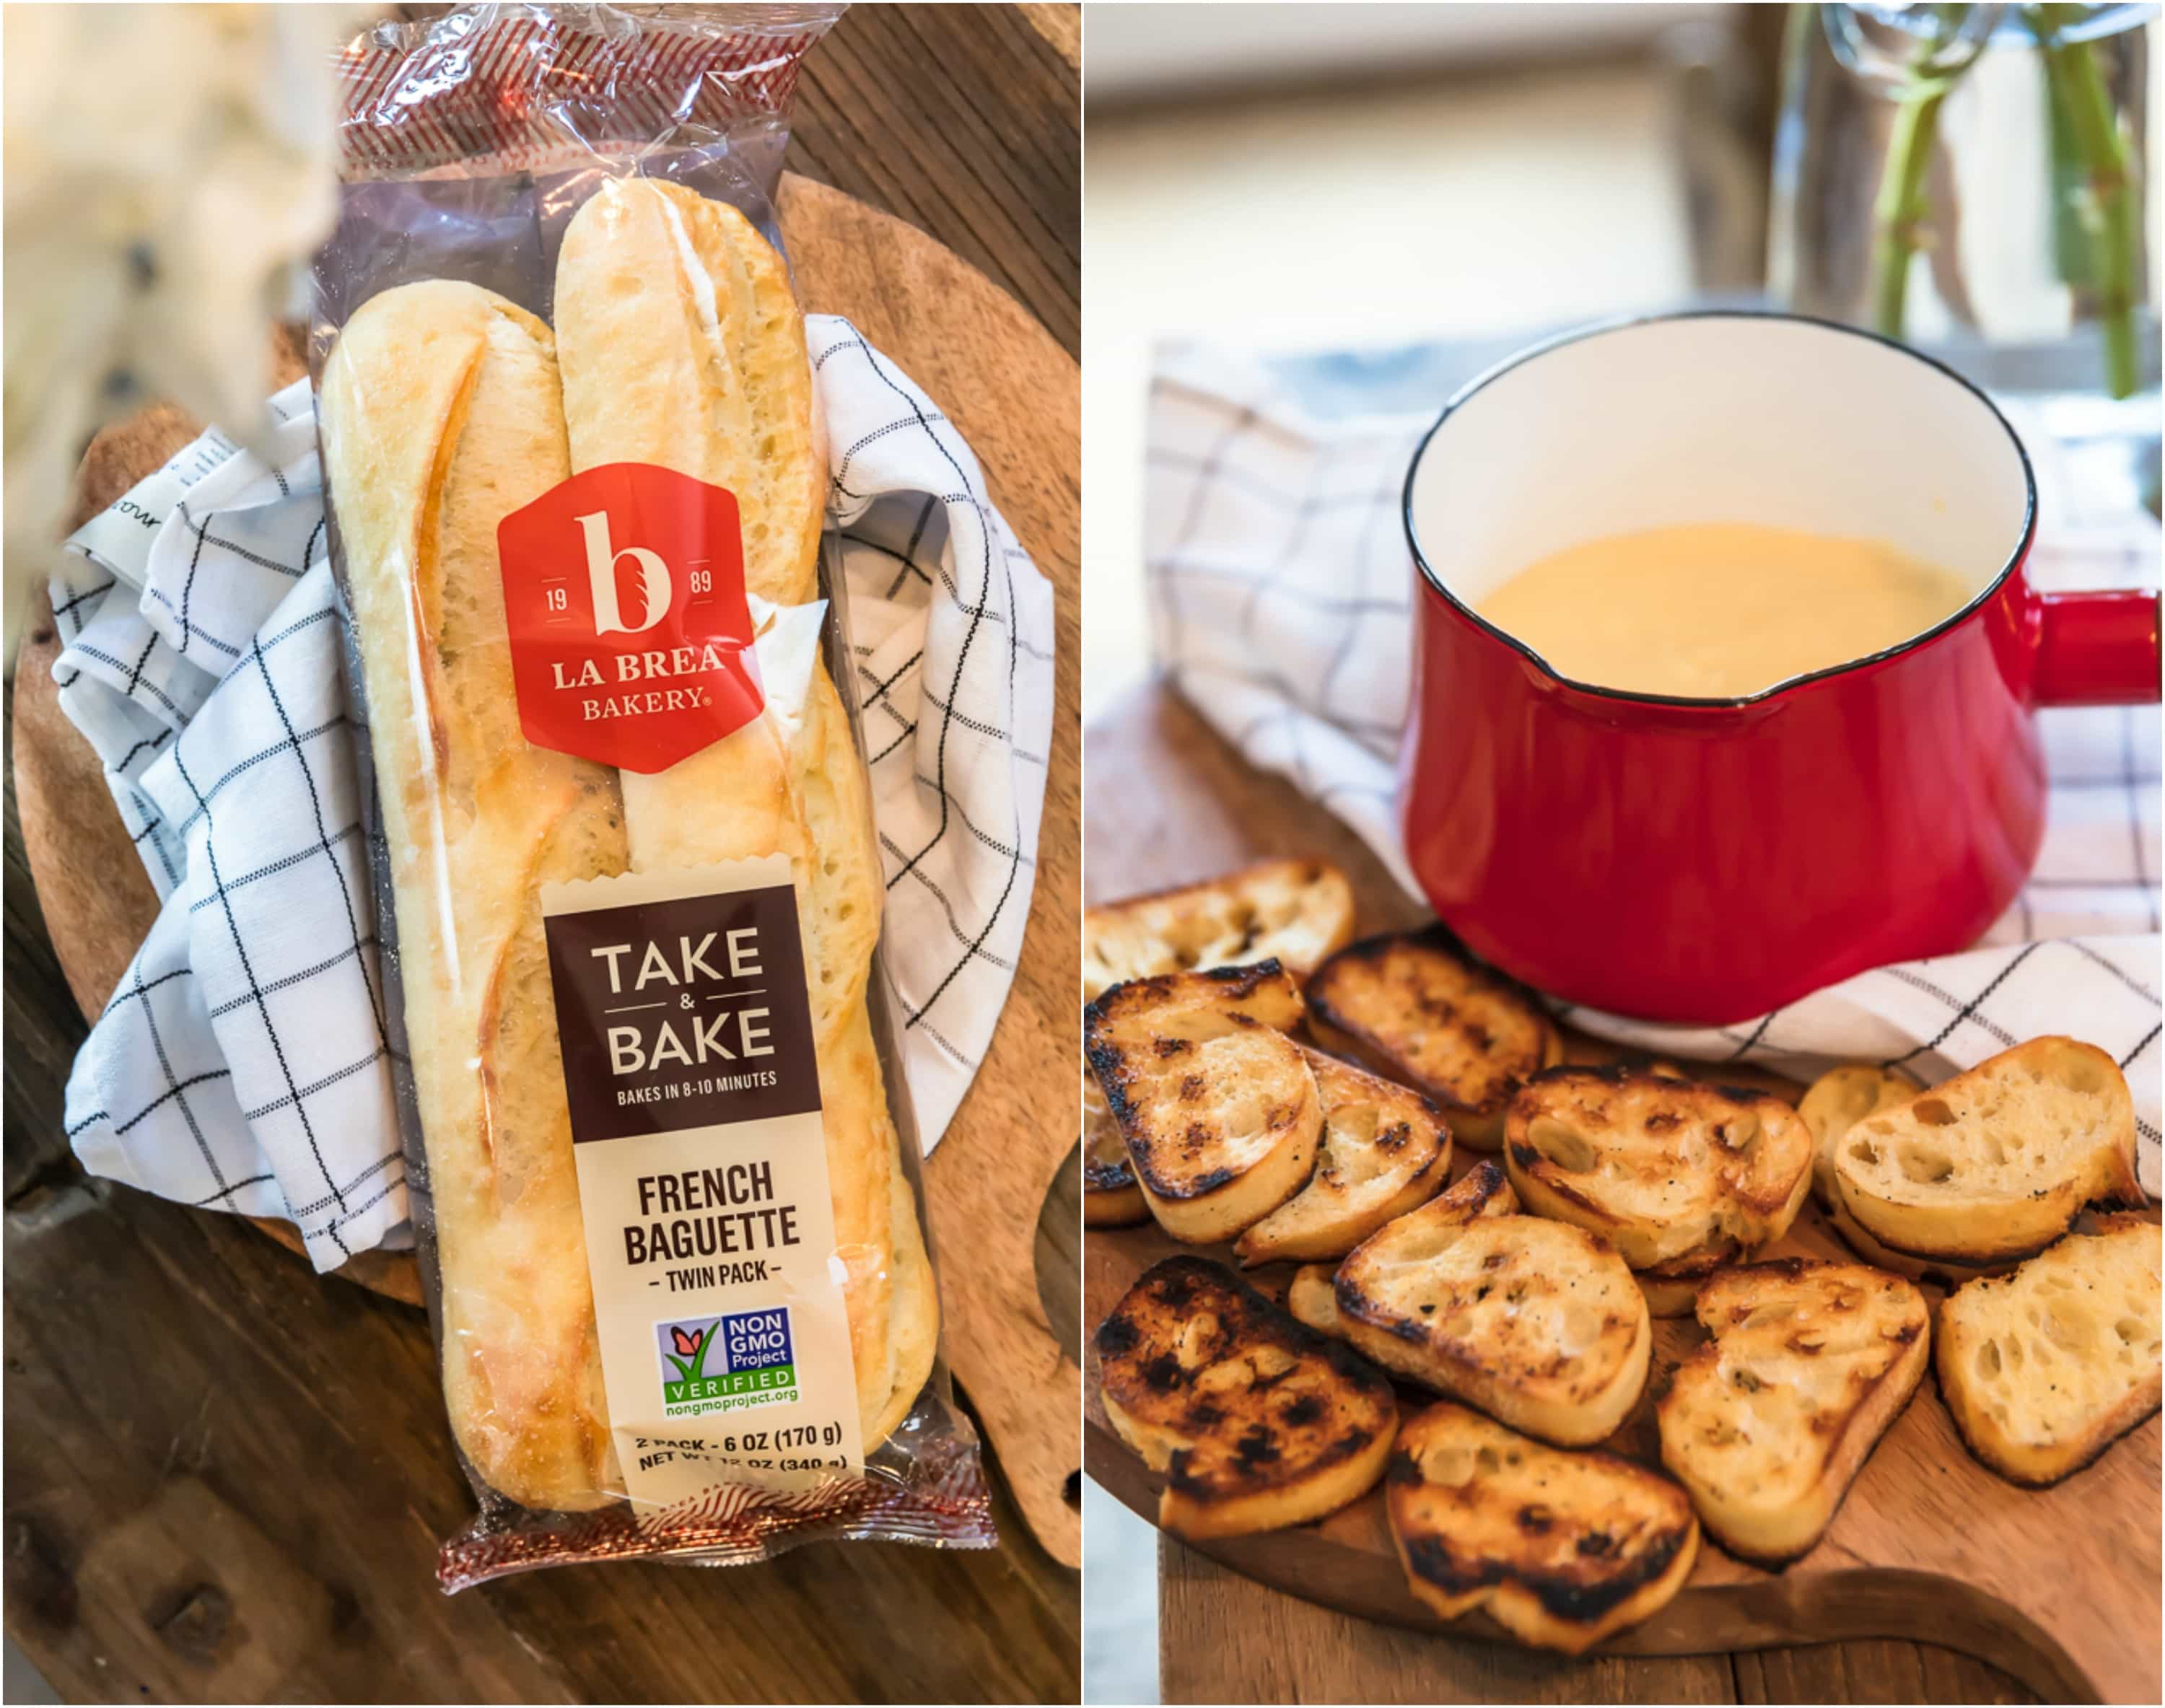 photo collage of la brea french baguette bread and toasted sliced bread with cheese fondue